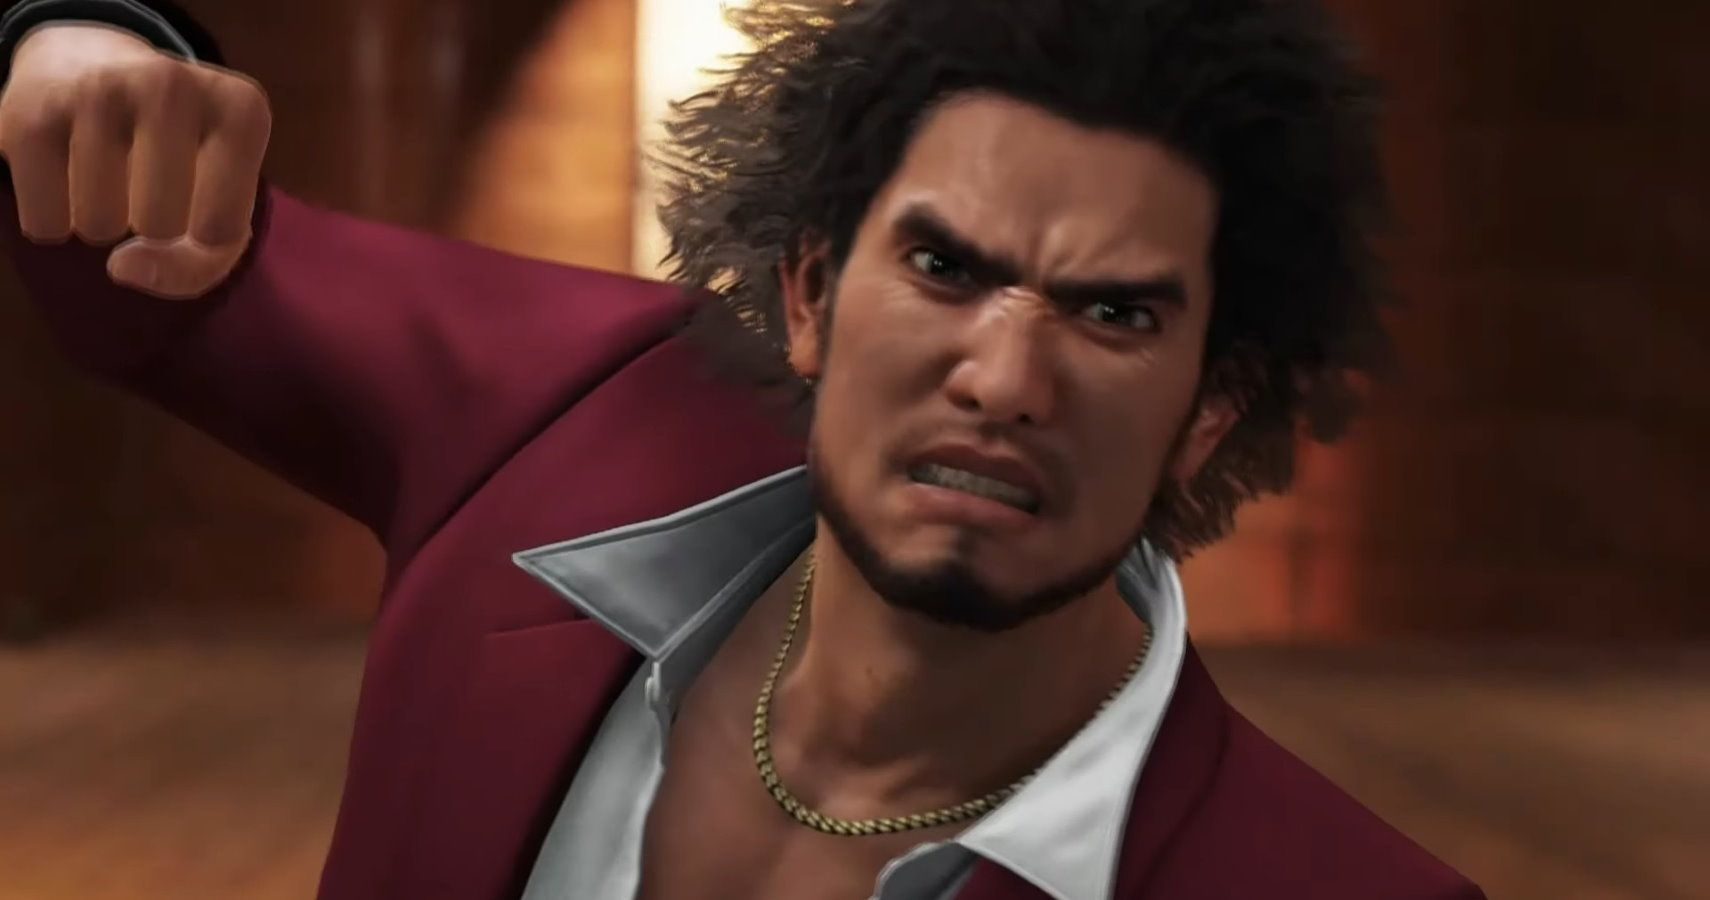 Yakuza: Like A Dragon, Scheduled To Release In 4 Days On Xbox Series X/S, Delayed Indefinitely In Japan